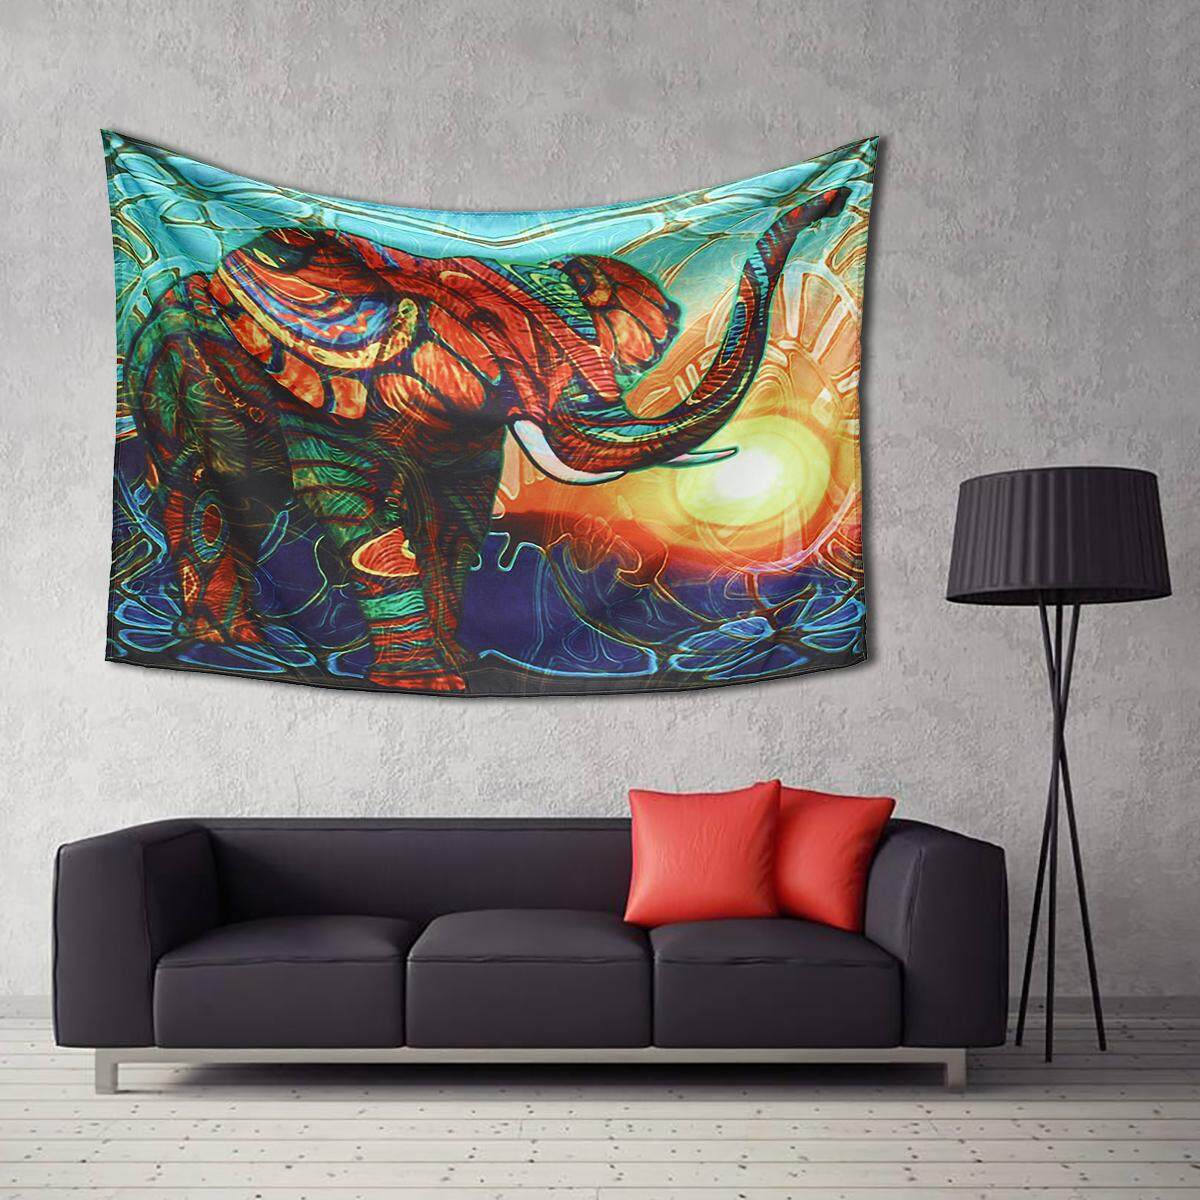 Mandala Elephant Tapestry Wall Hanging Decorative Tapestry Art Boho Decoration 229x150